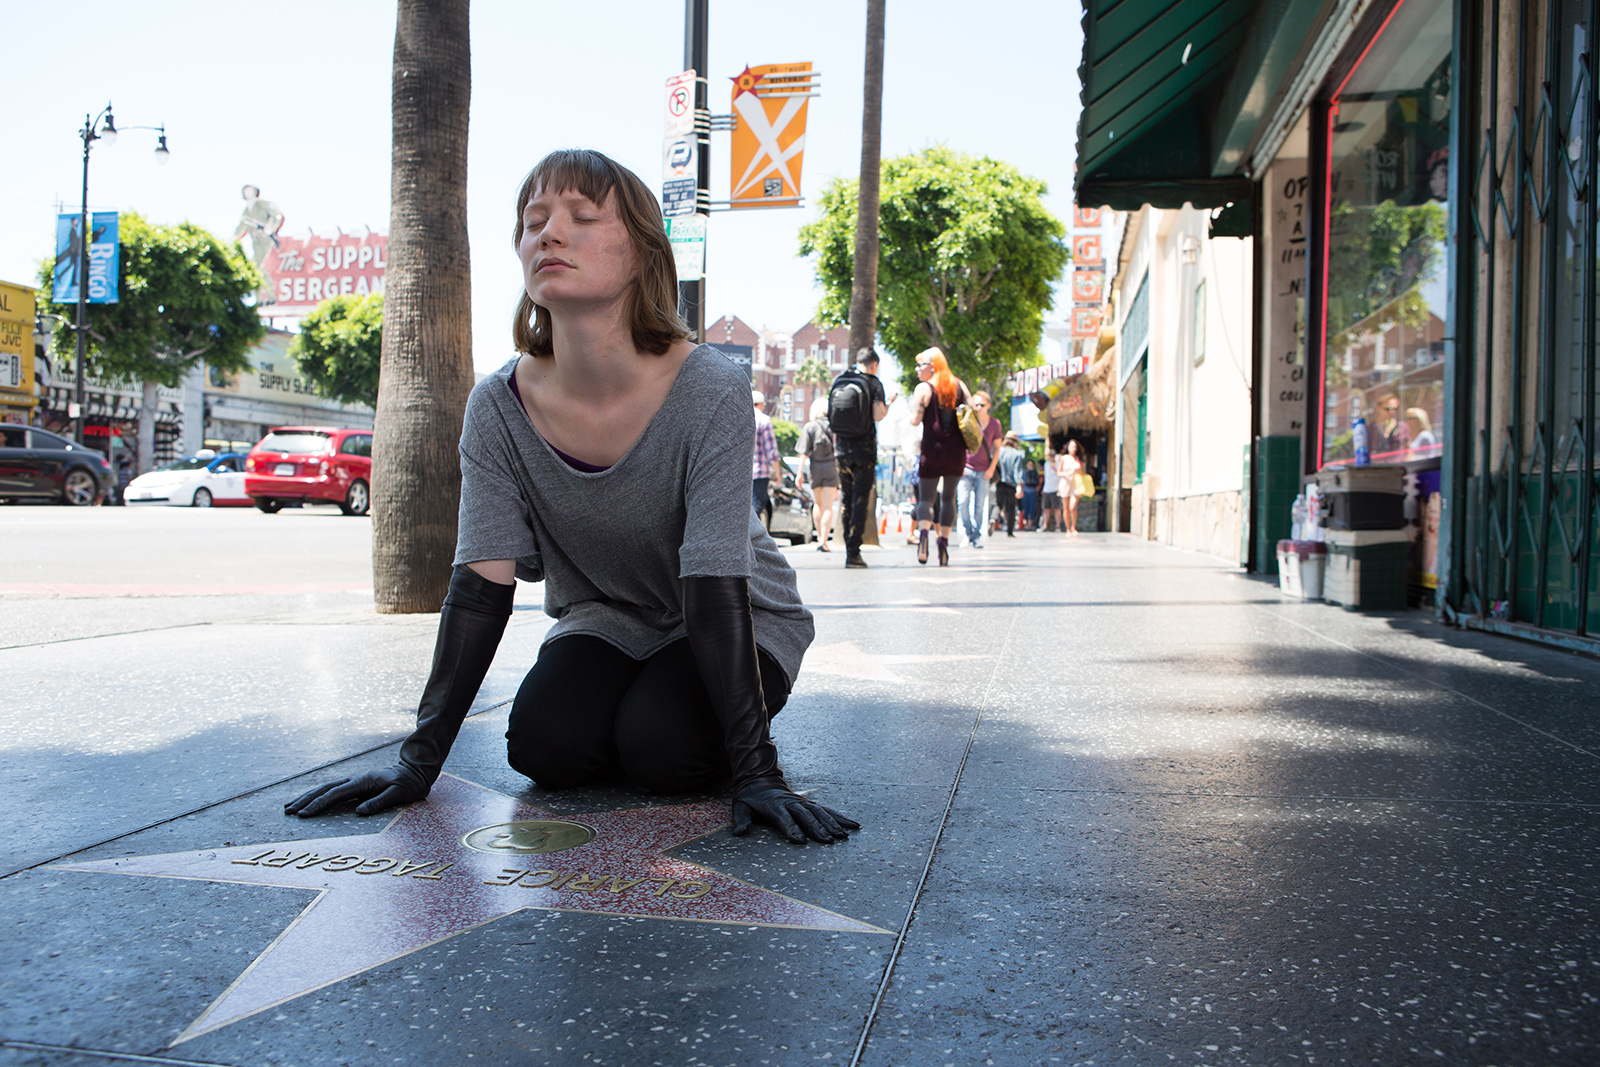 Maps to the stars2